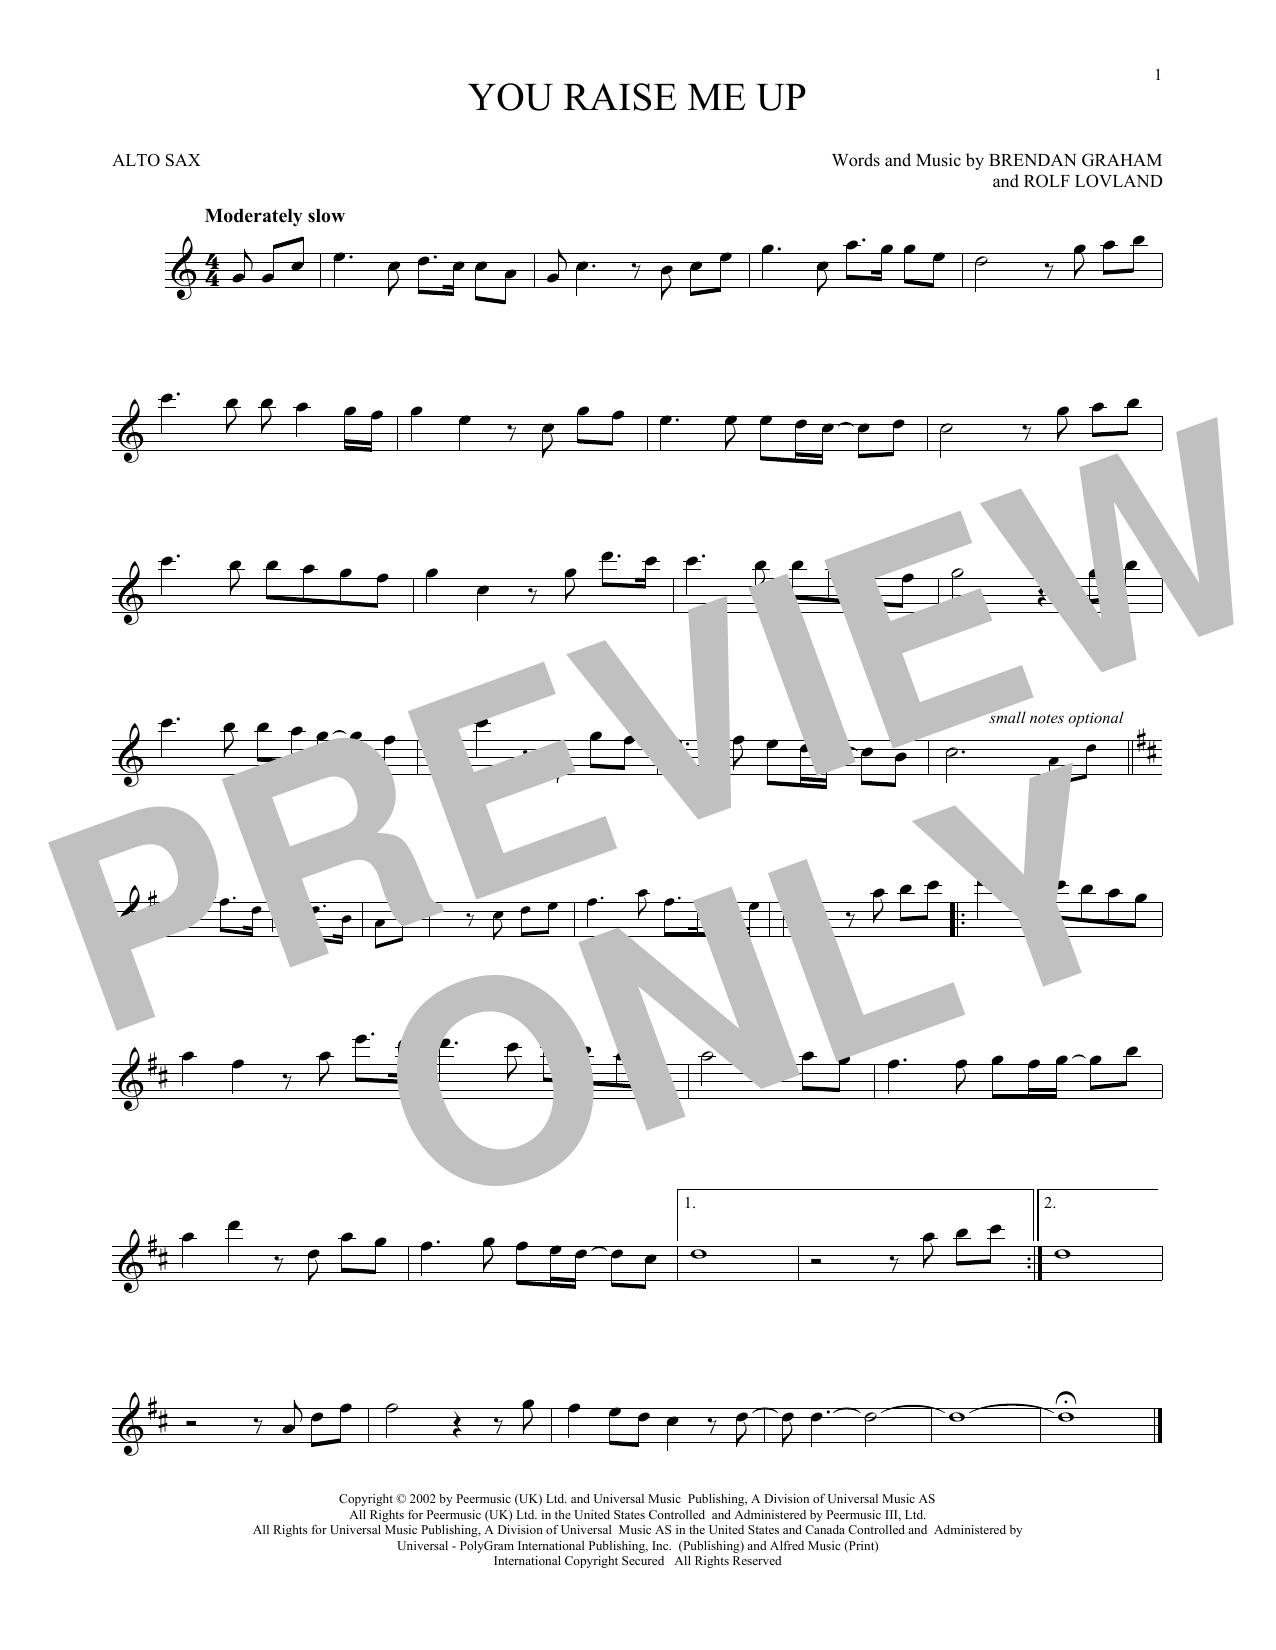 You Raise Me Up Chords Brendan Graham You Raise Me Up Sheet Music Notes Chords Download Printable Alto Saxophone Sku 169522